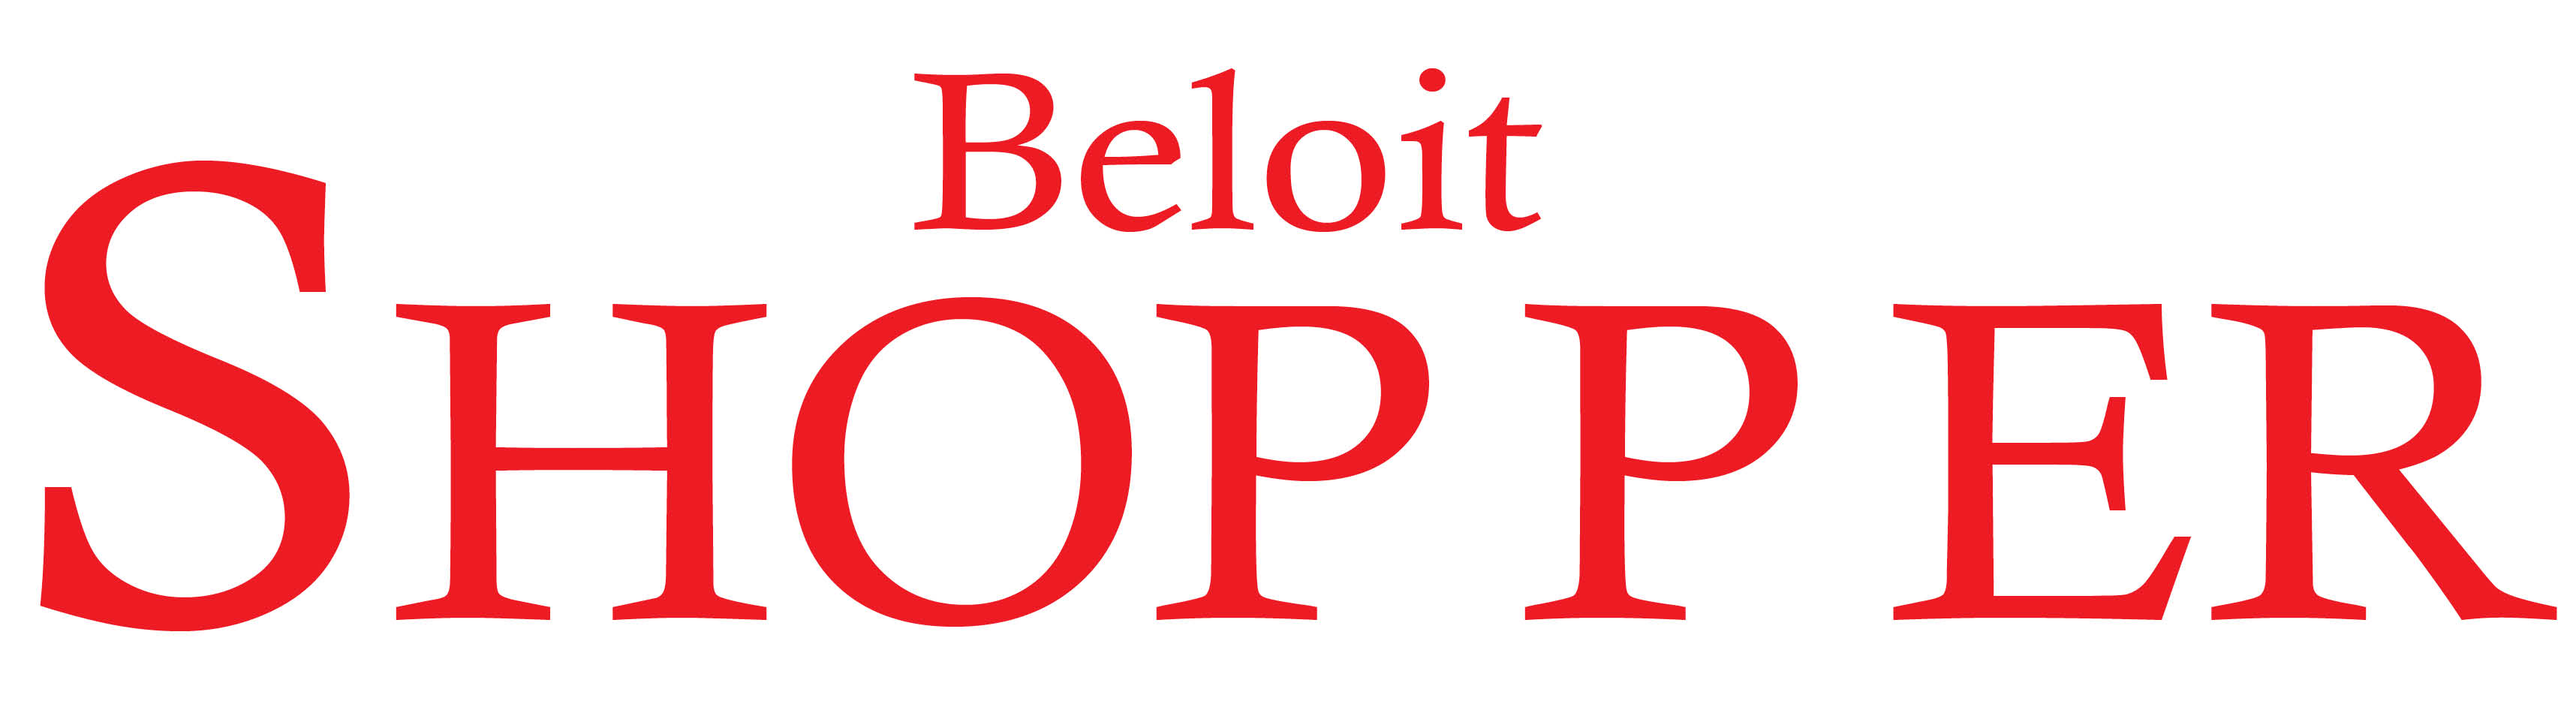 7/27/17 Beloit Shopper